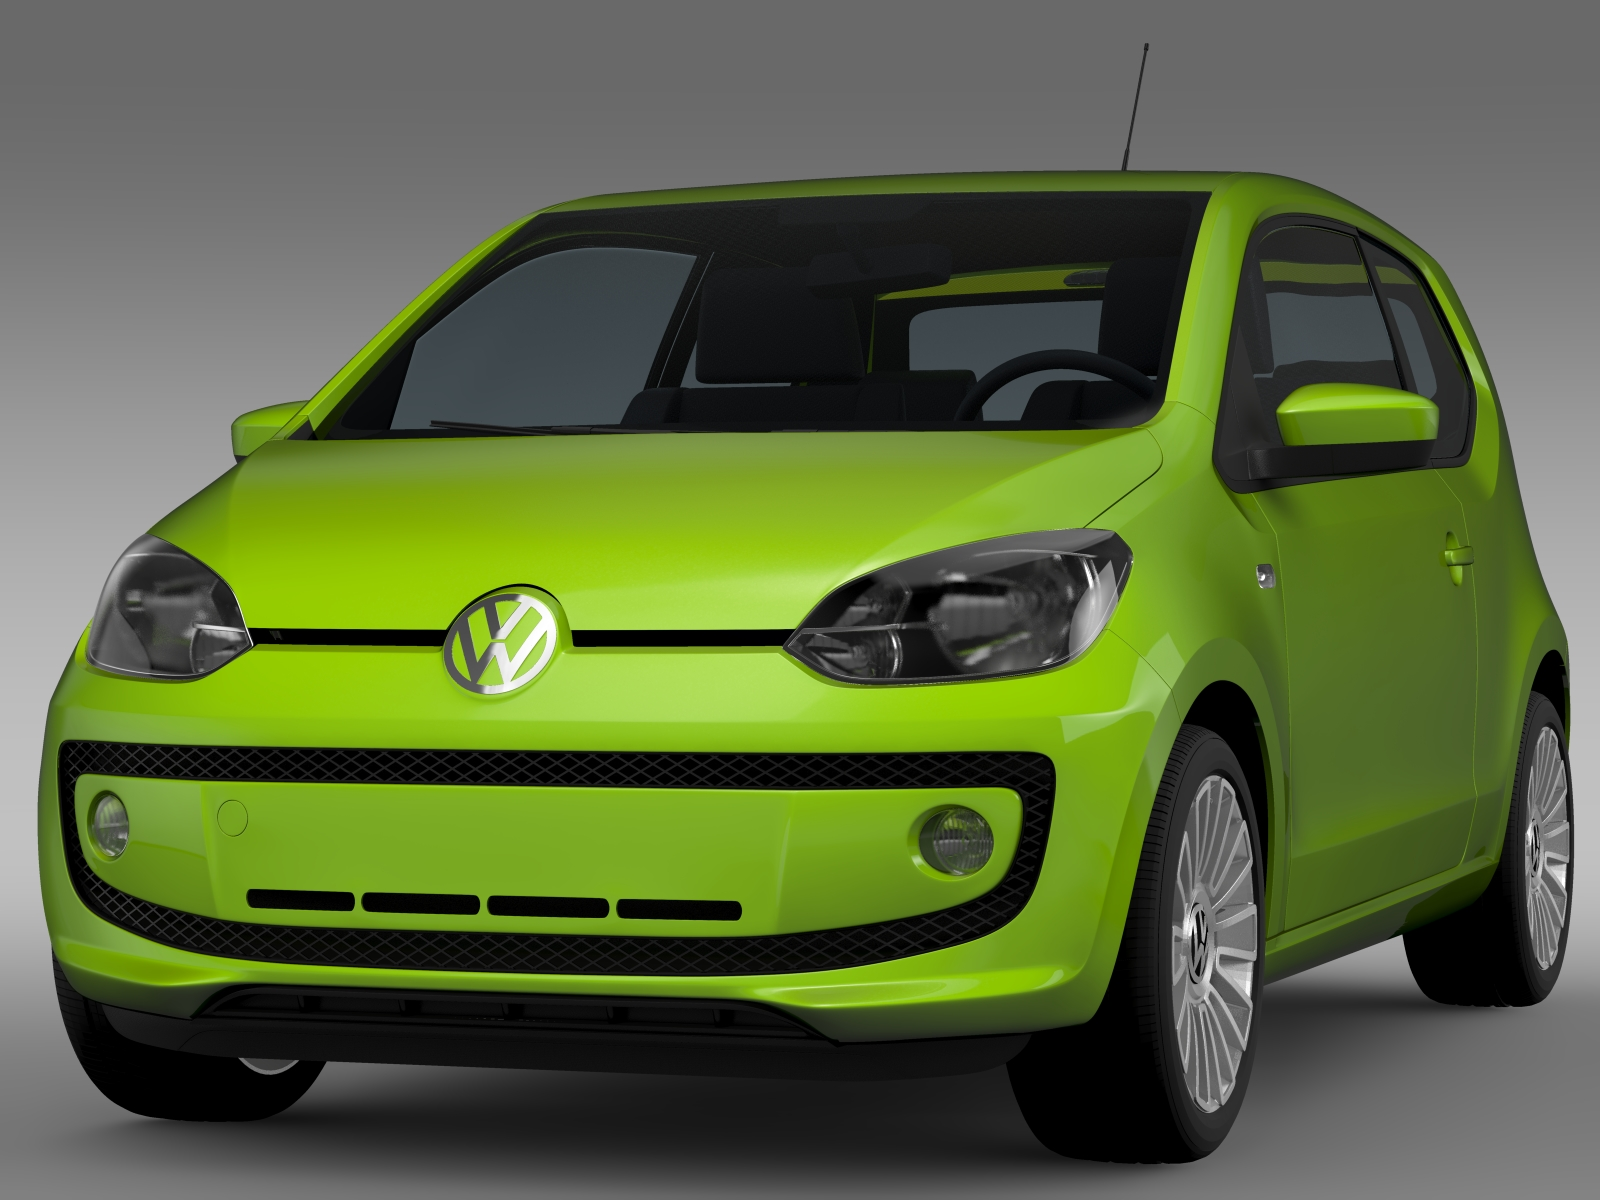 vw up ecofuel 3door 2015 3d model buy vw up ecofuel 3door 2015 3d model flatpyramid. Black Bedroom Furniture Sets. Home Design Ideas